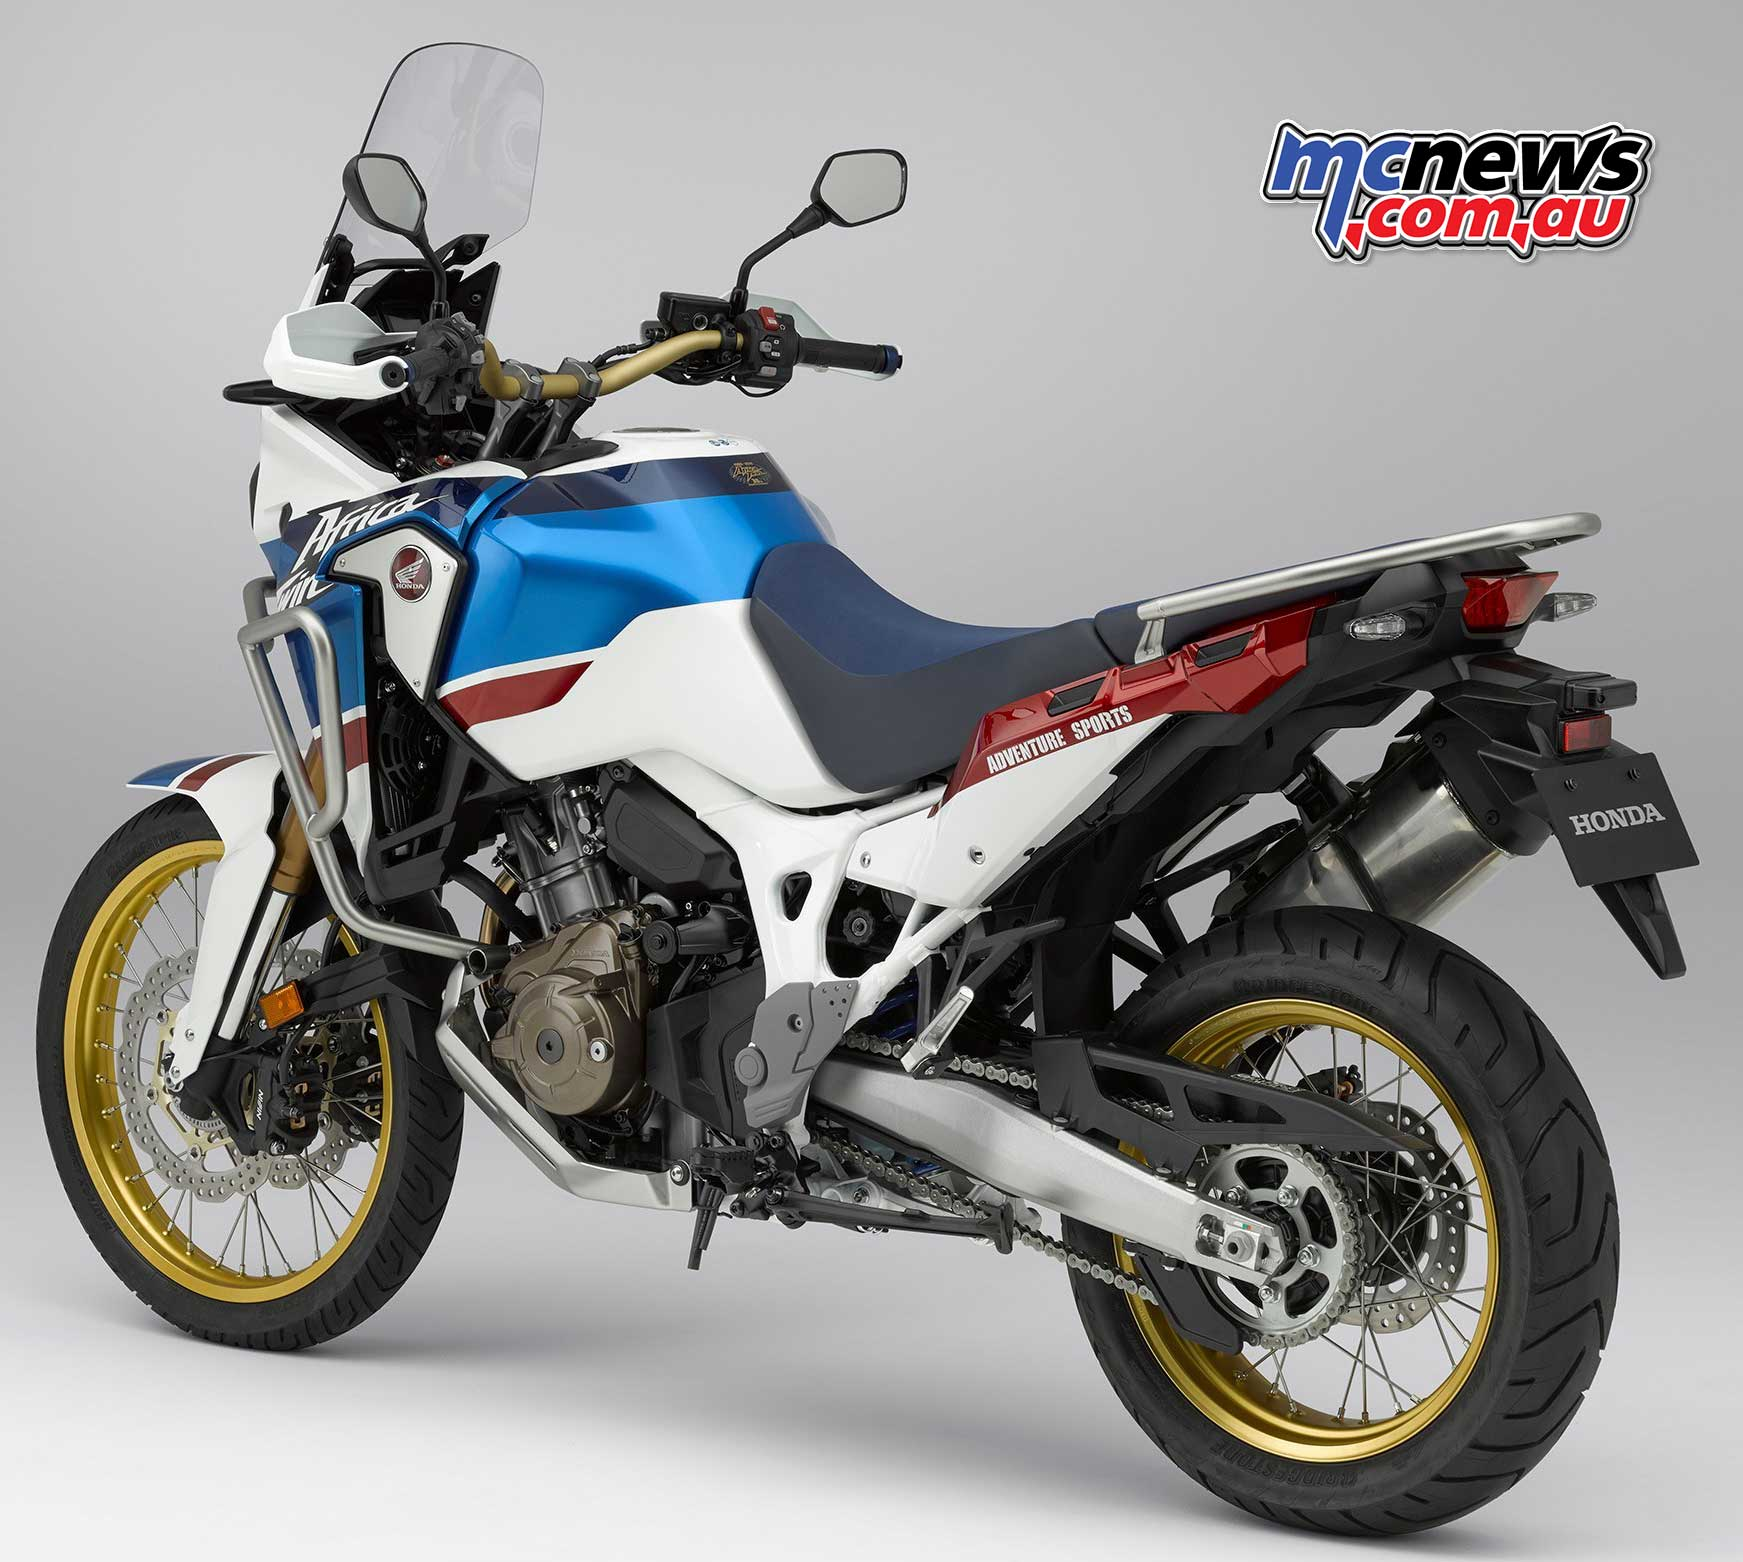 2019 africa twin adventure sports now in dealers. Black Bedroom Furniture Sets. Home Design Ideas